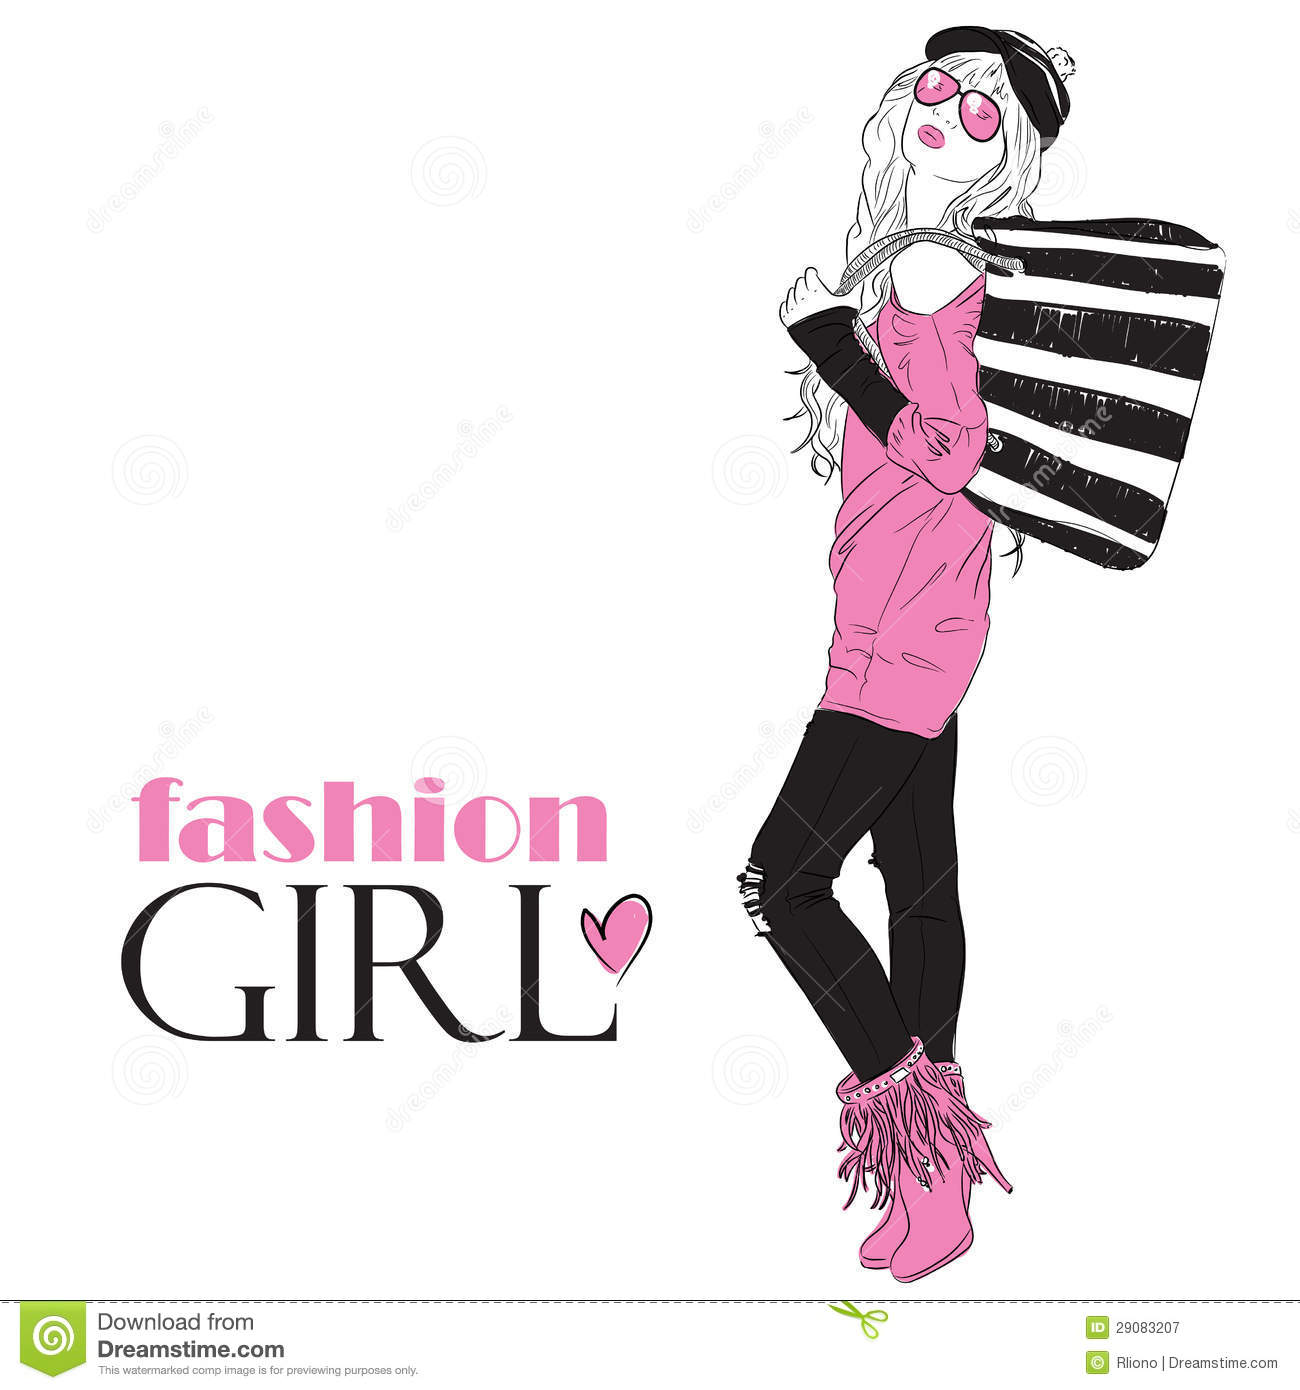 Fashion Girl In Sketch Style Stock Vector Image 29083207